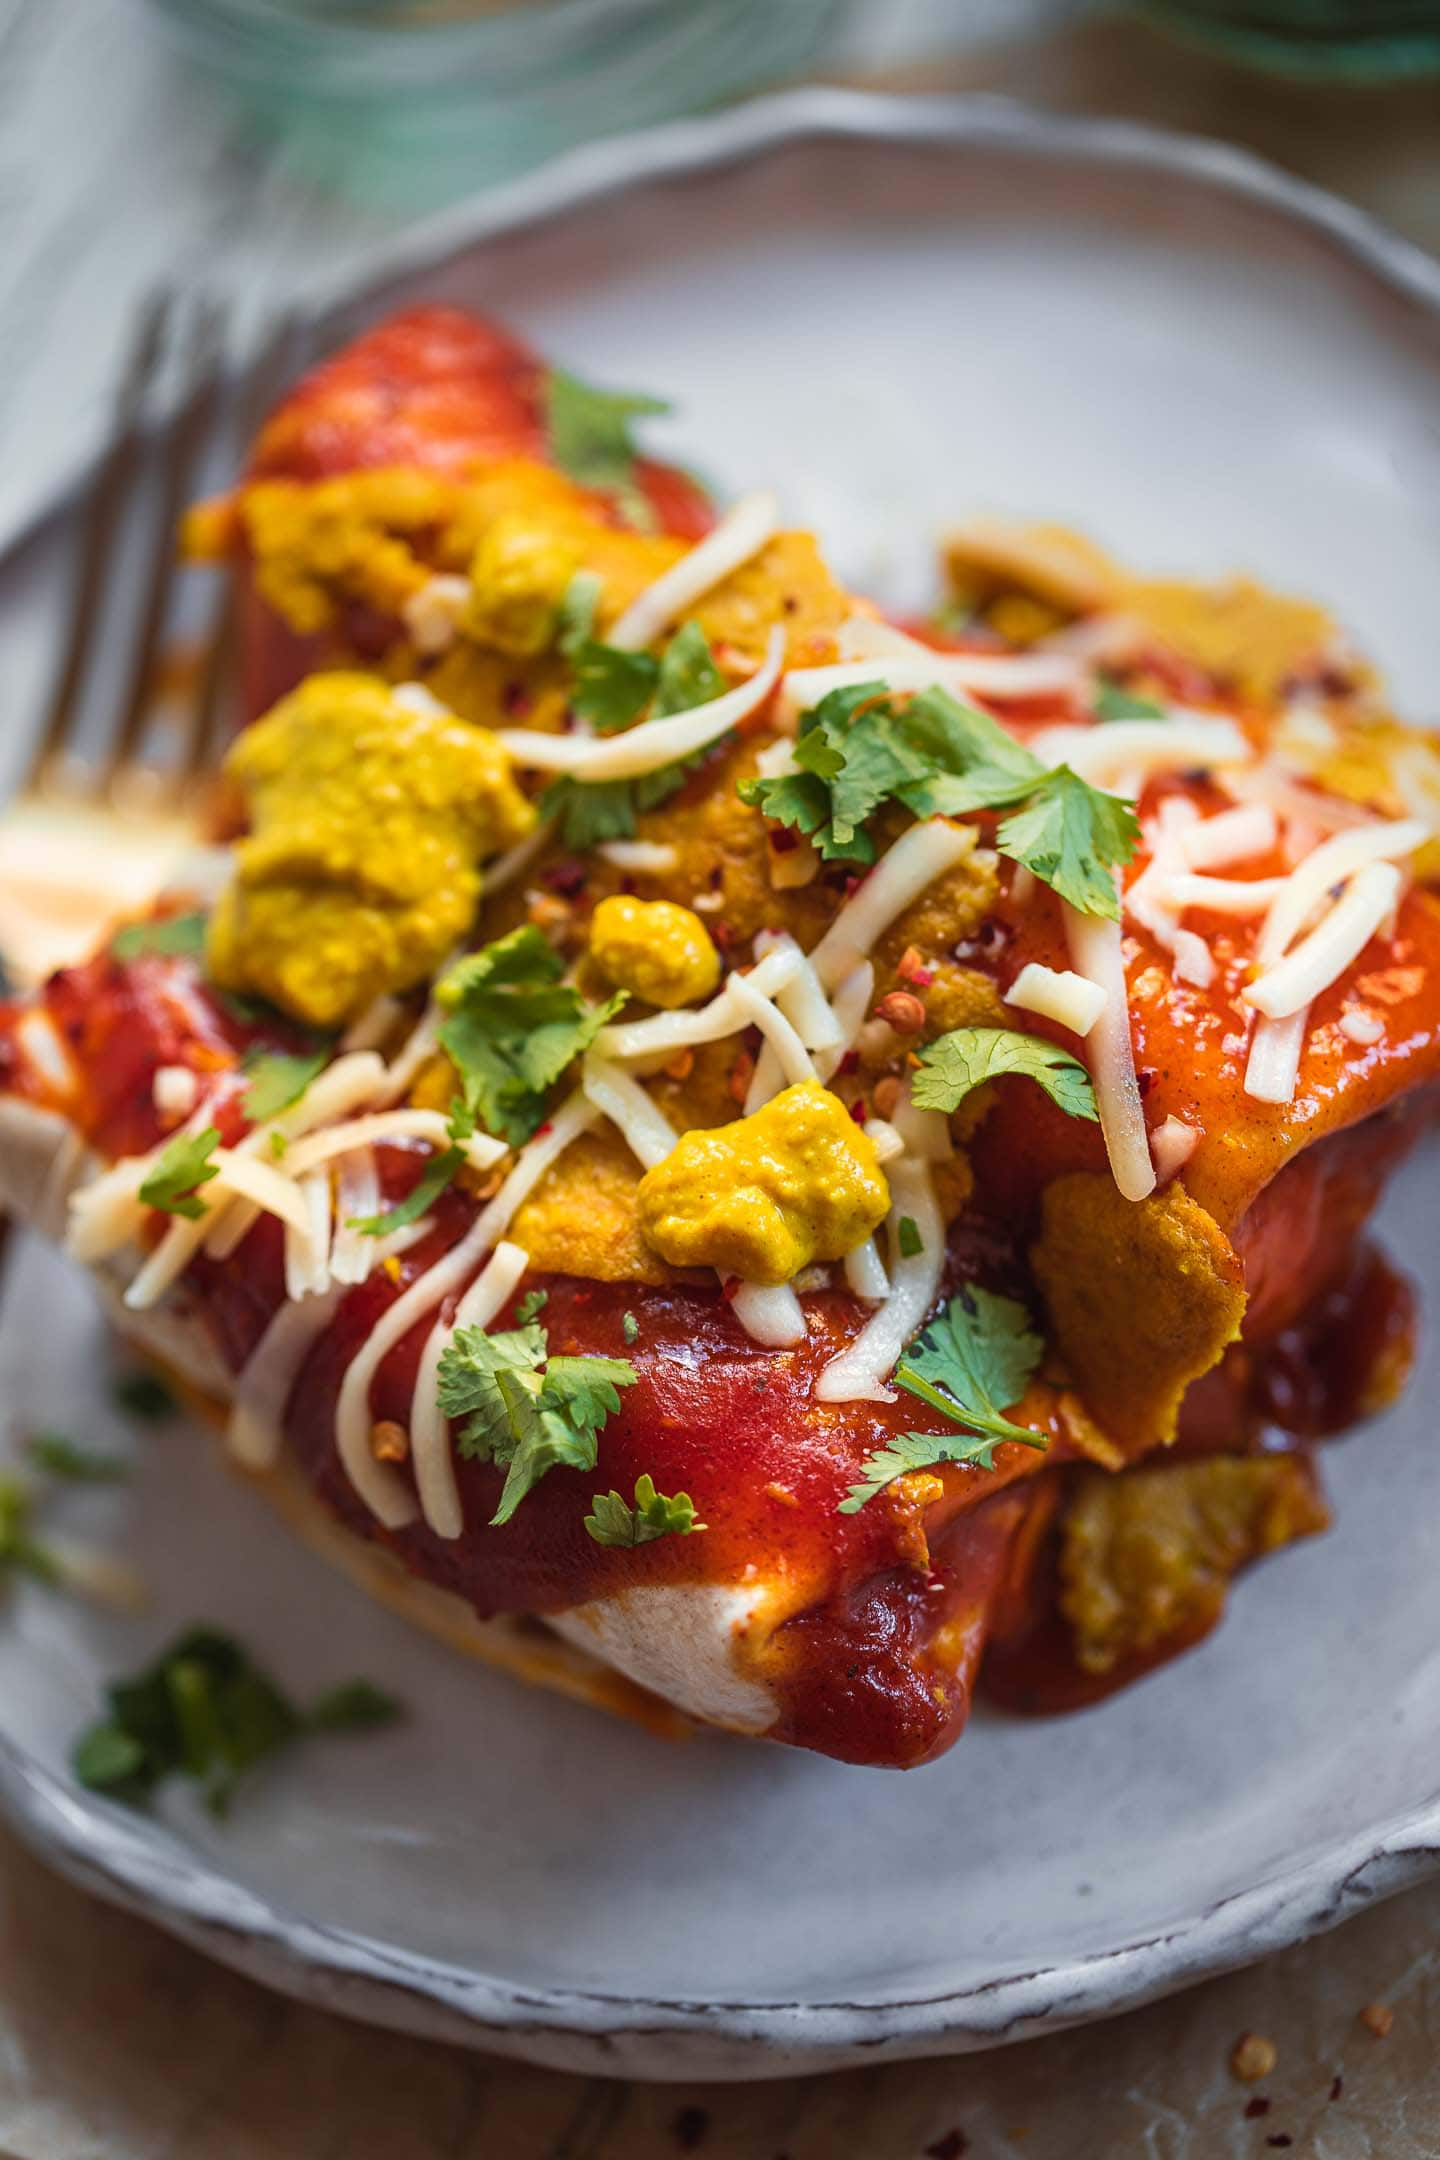 Vegan enchiladas with cashew cheese and fresh herbs